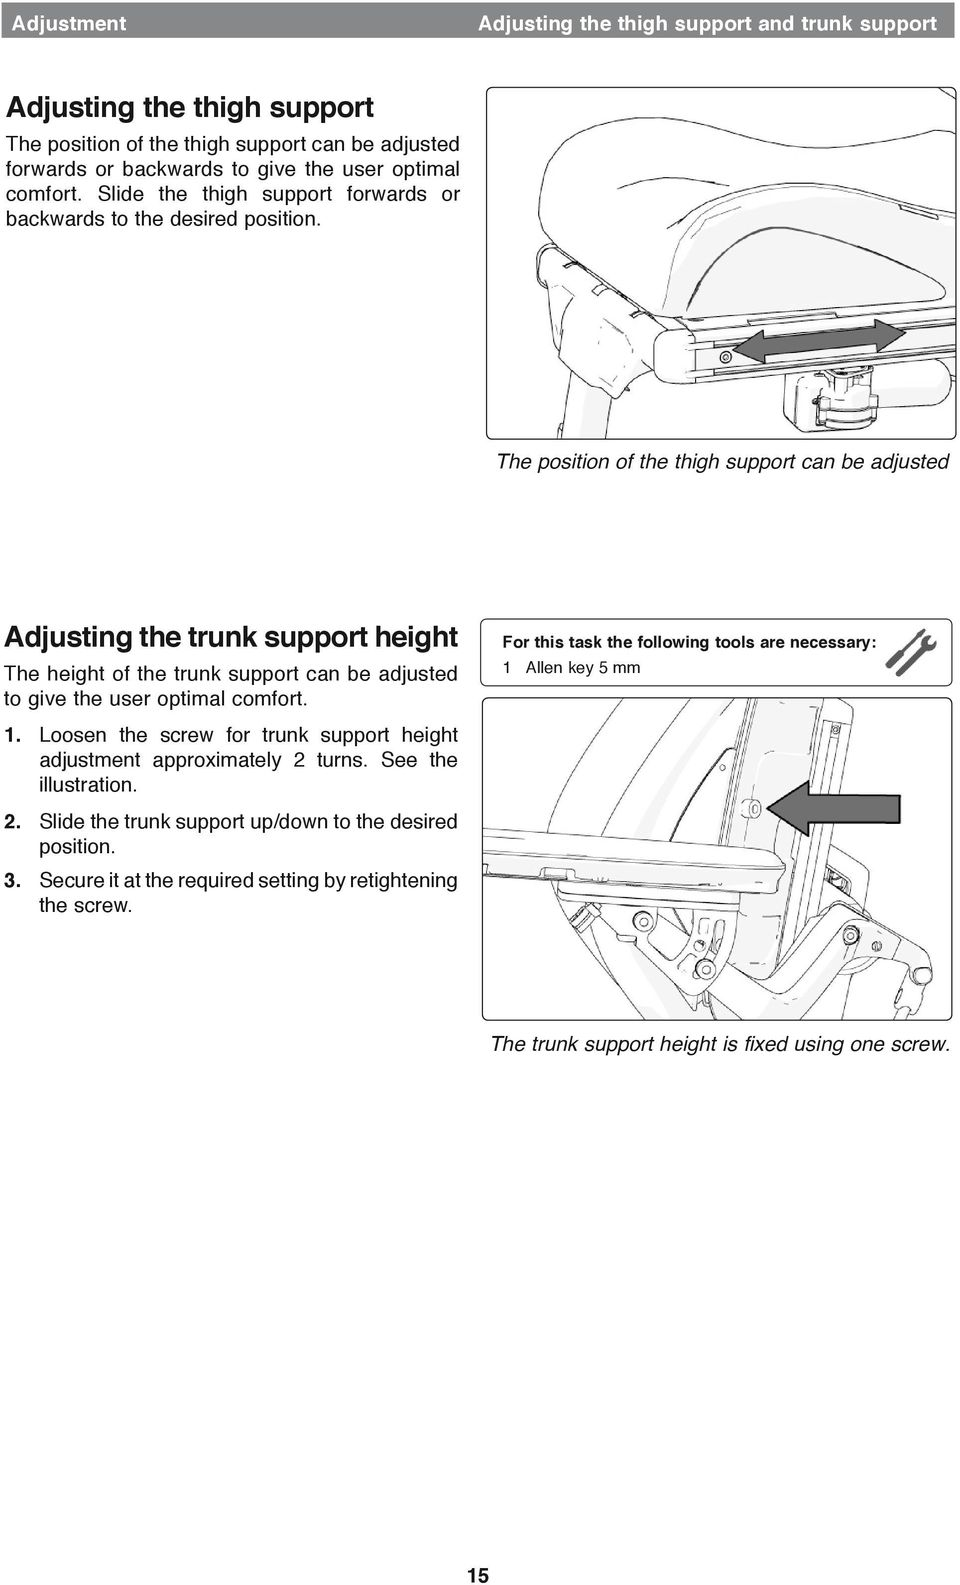 The position of the thigh support can be adjusted Adjusting the trunk support height The height of the trunk support can be adjusted to give the user optimal comfort. 1.